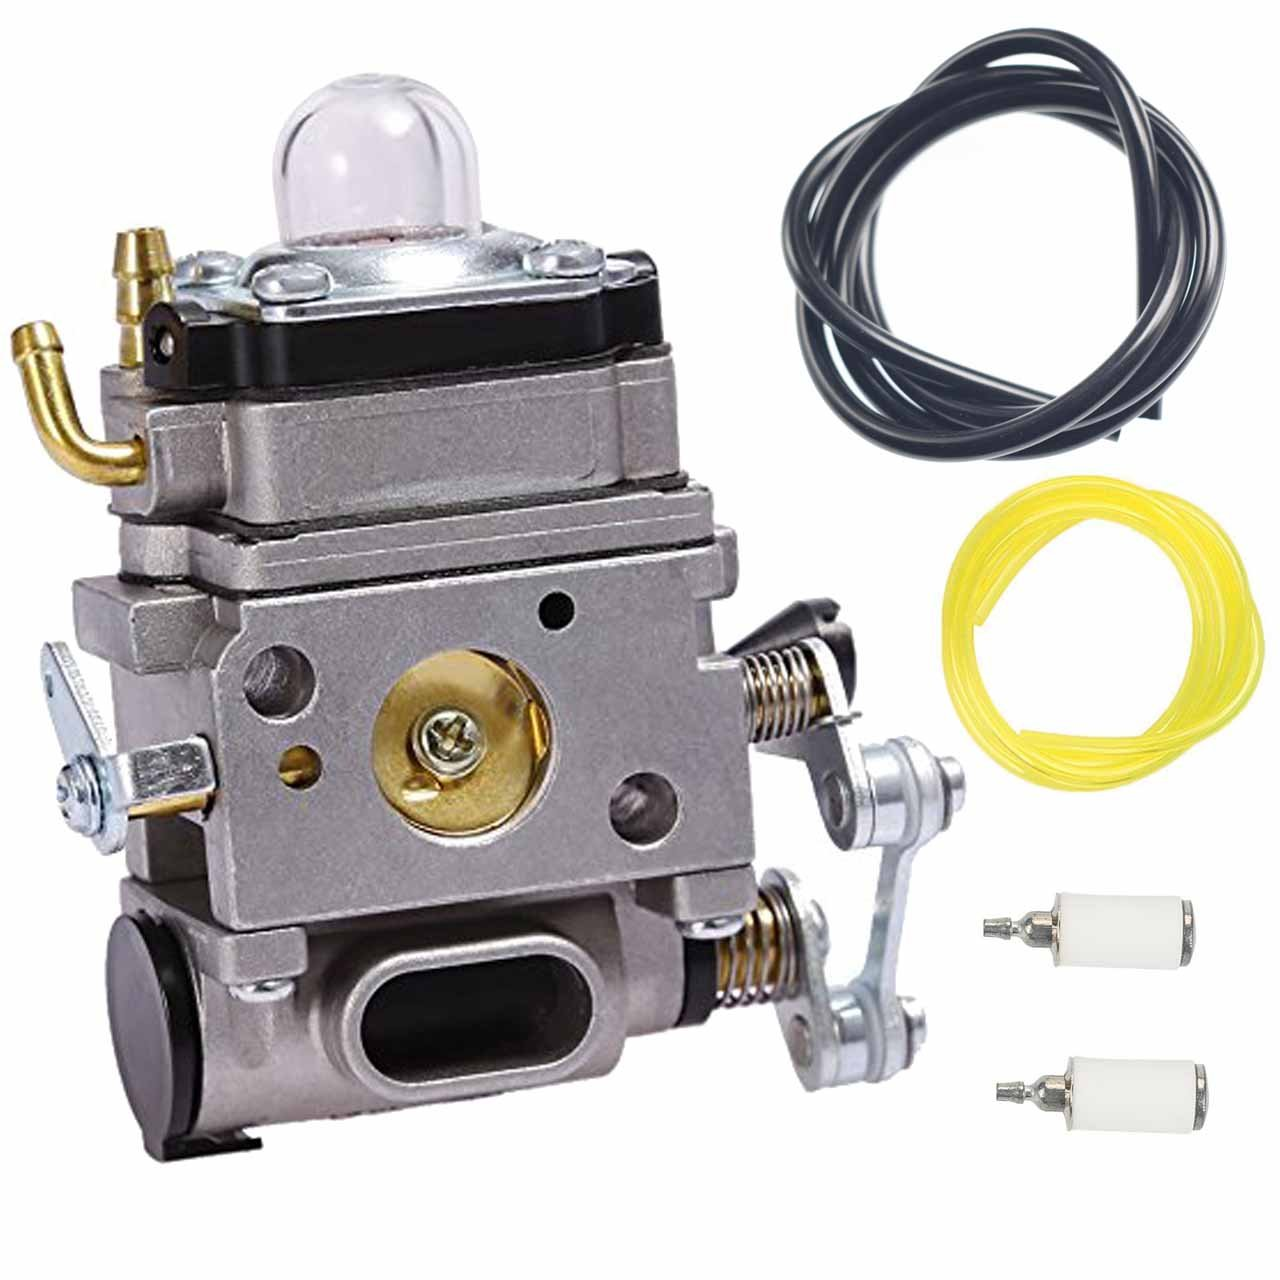 FanzKo Backpack Blower Carburetor for Echo PB500 PB500T PB500H EB508RT A021001641 A021001642 Walbro WLA-1 New Carb